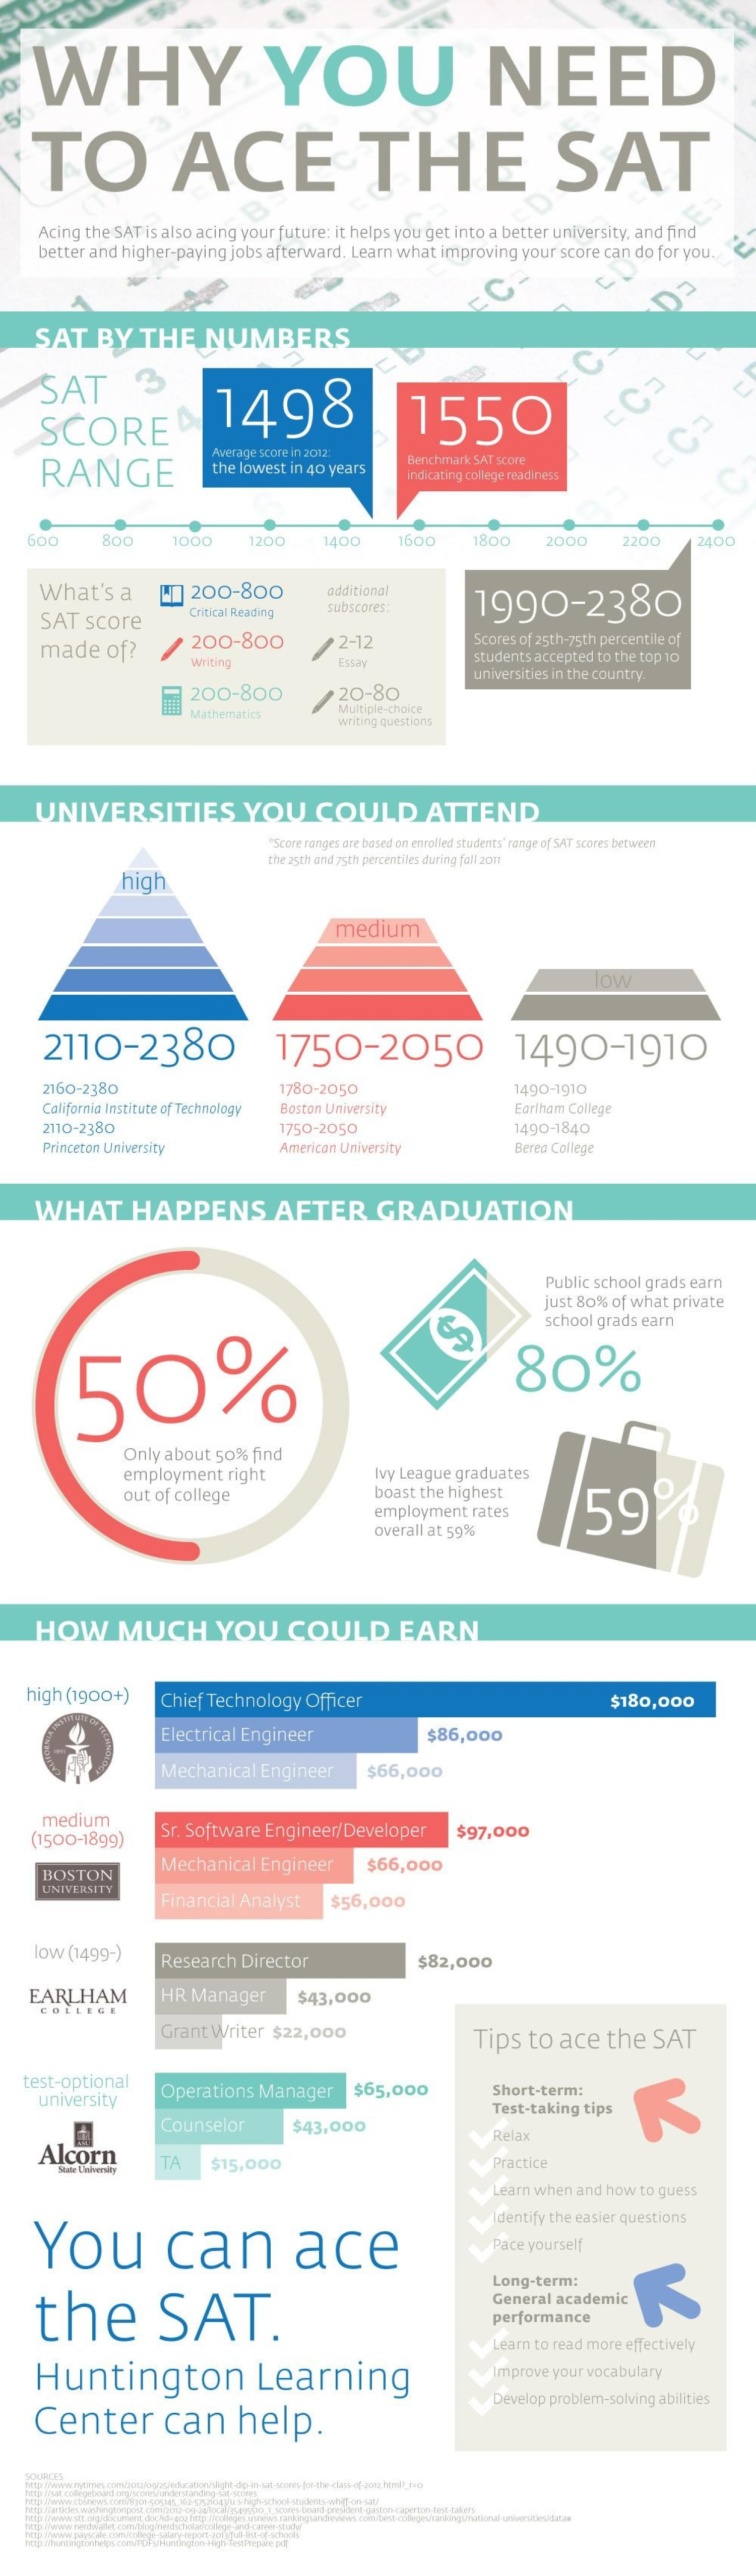 Why You Need to Ace the SAT Infographic